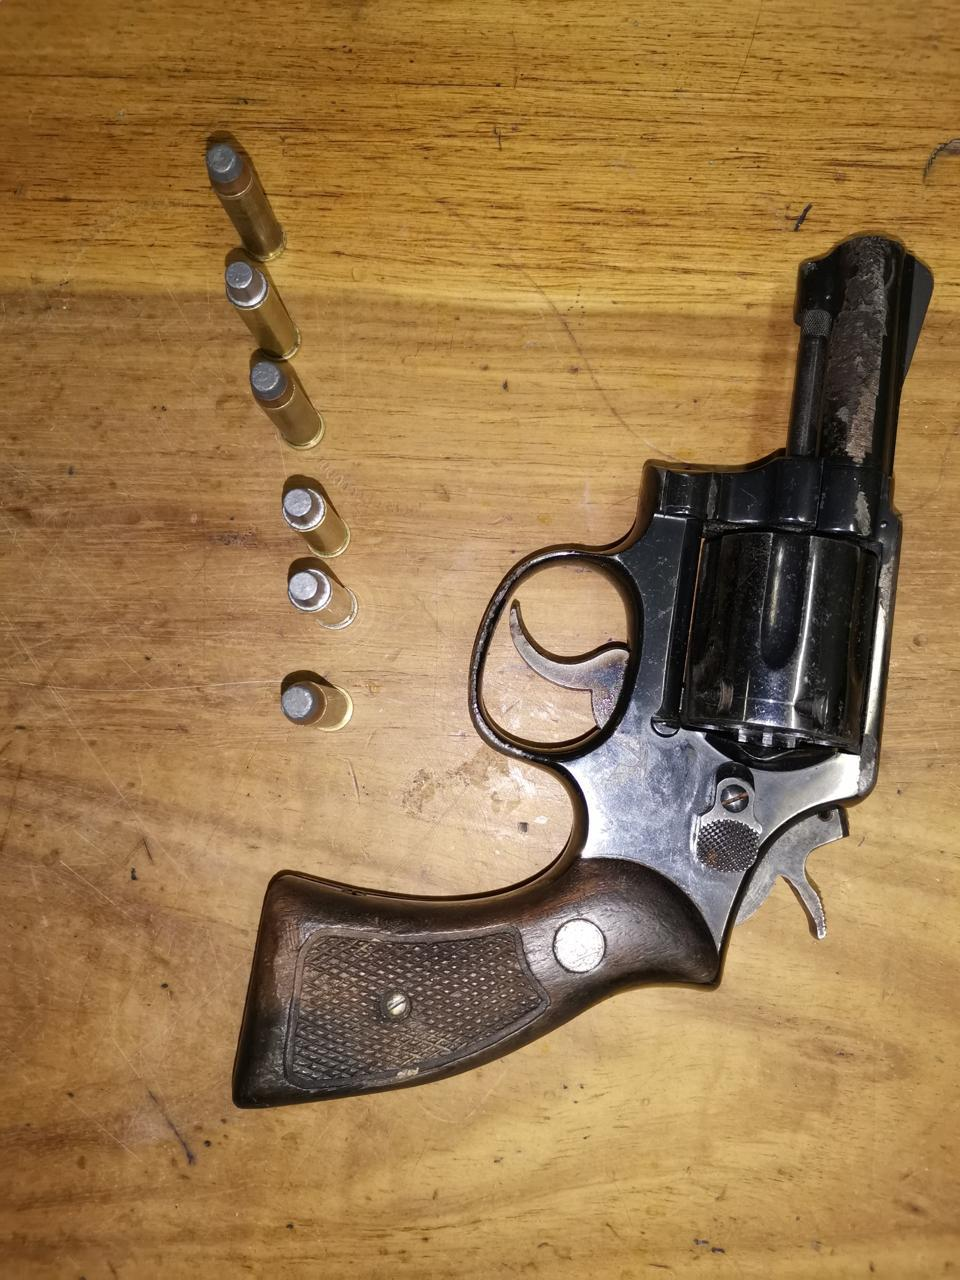 Armed suspects arrested in Kraaifontein and Manenberg